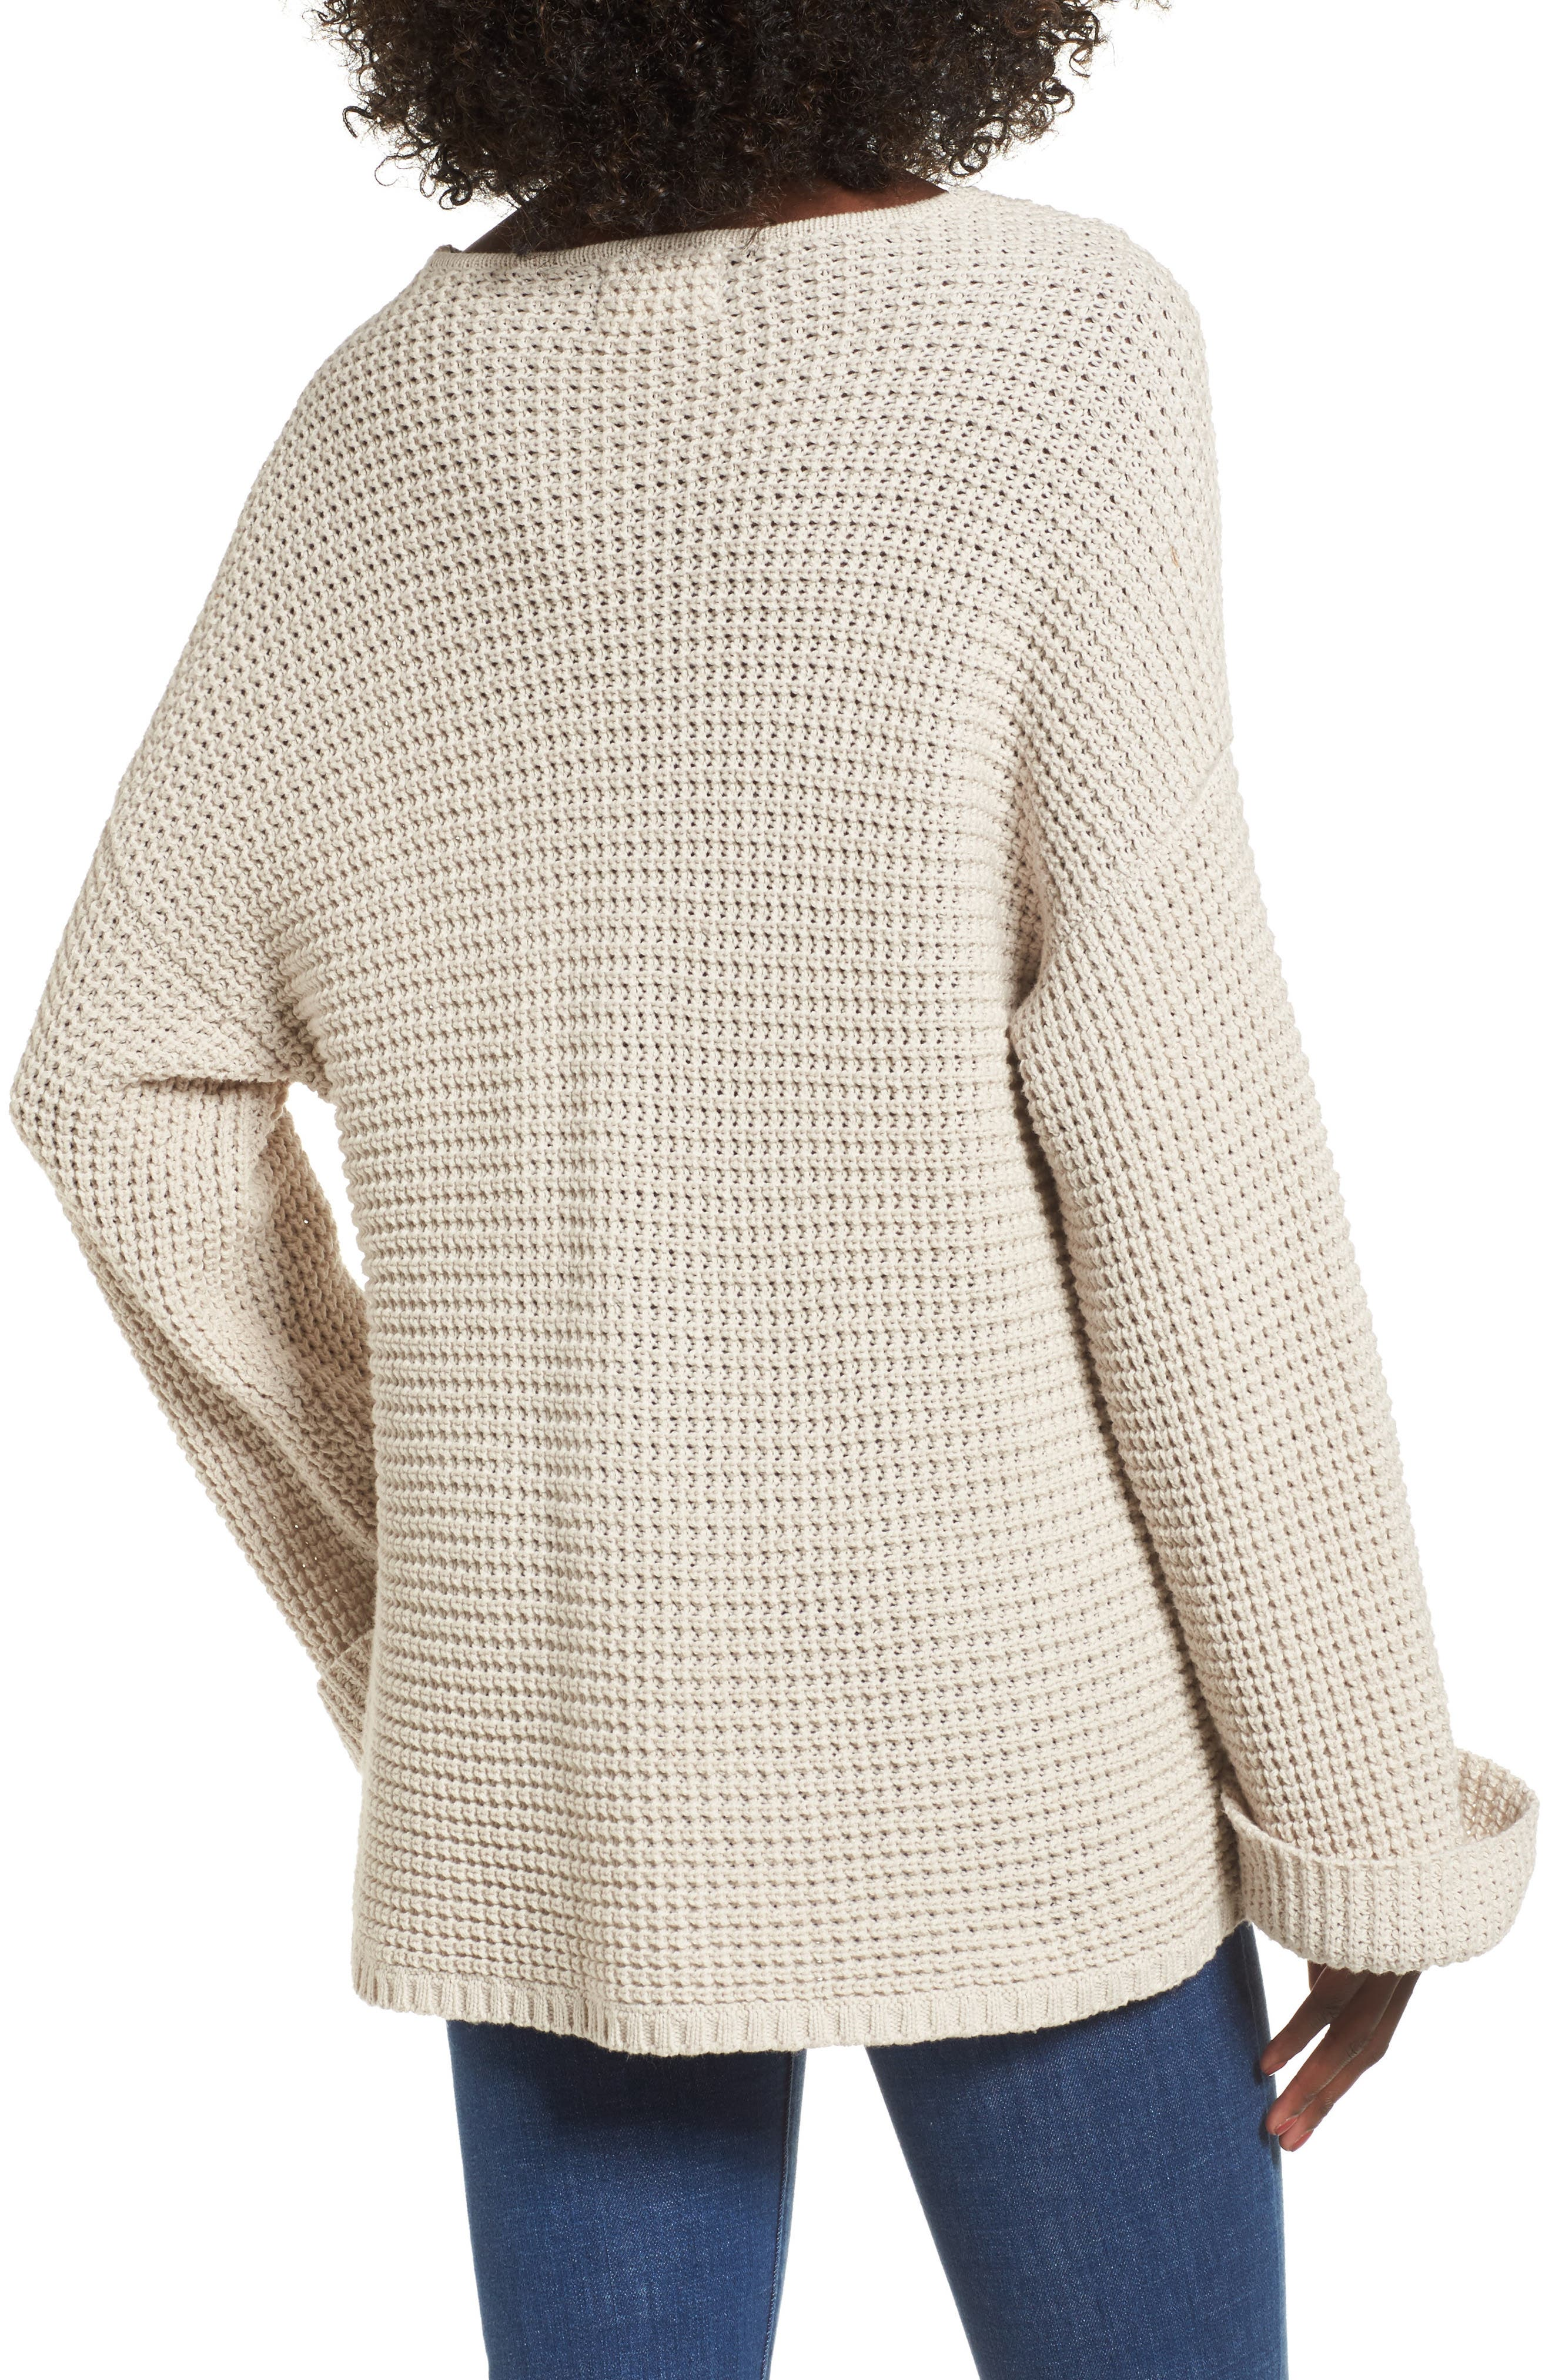 Adelia Bell Sleeve Sweater,                             Alternate thumbnail 2, color,                             Creme